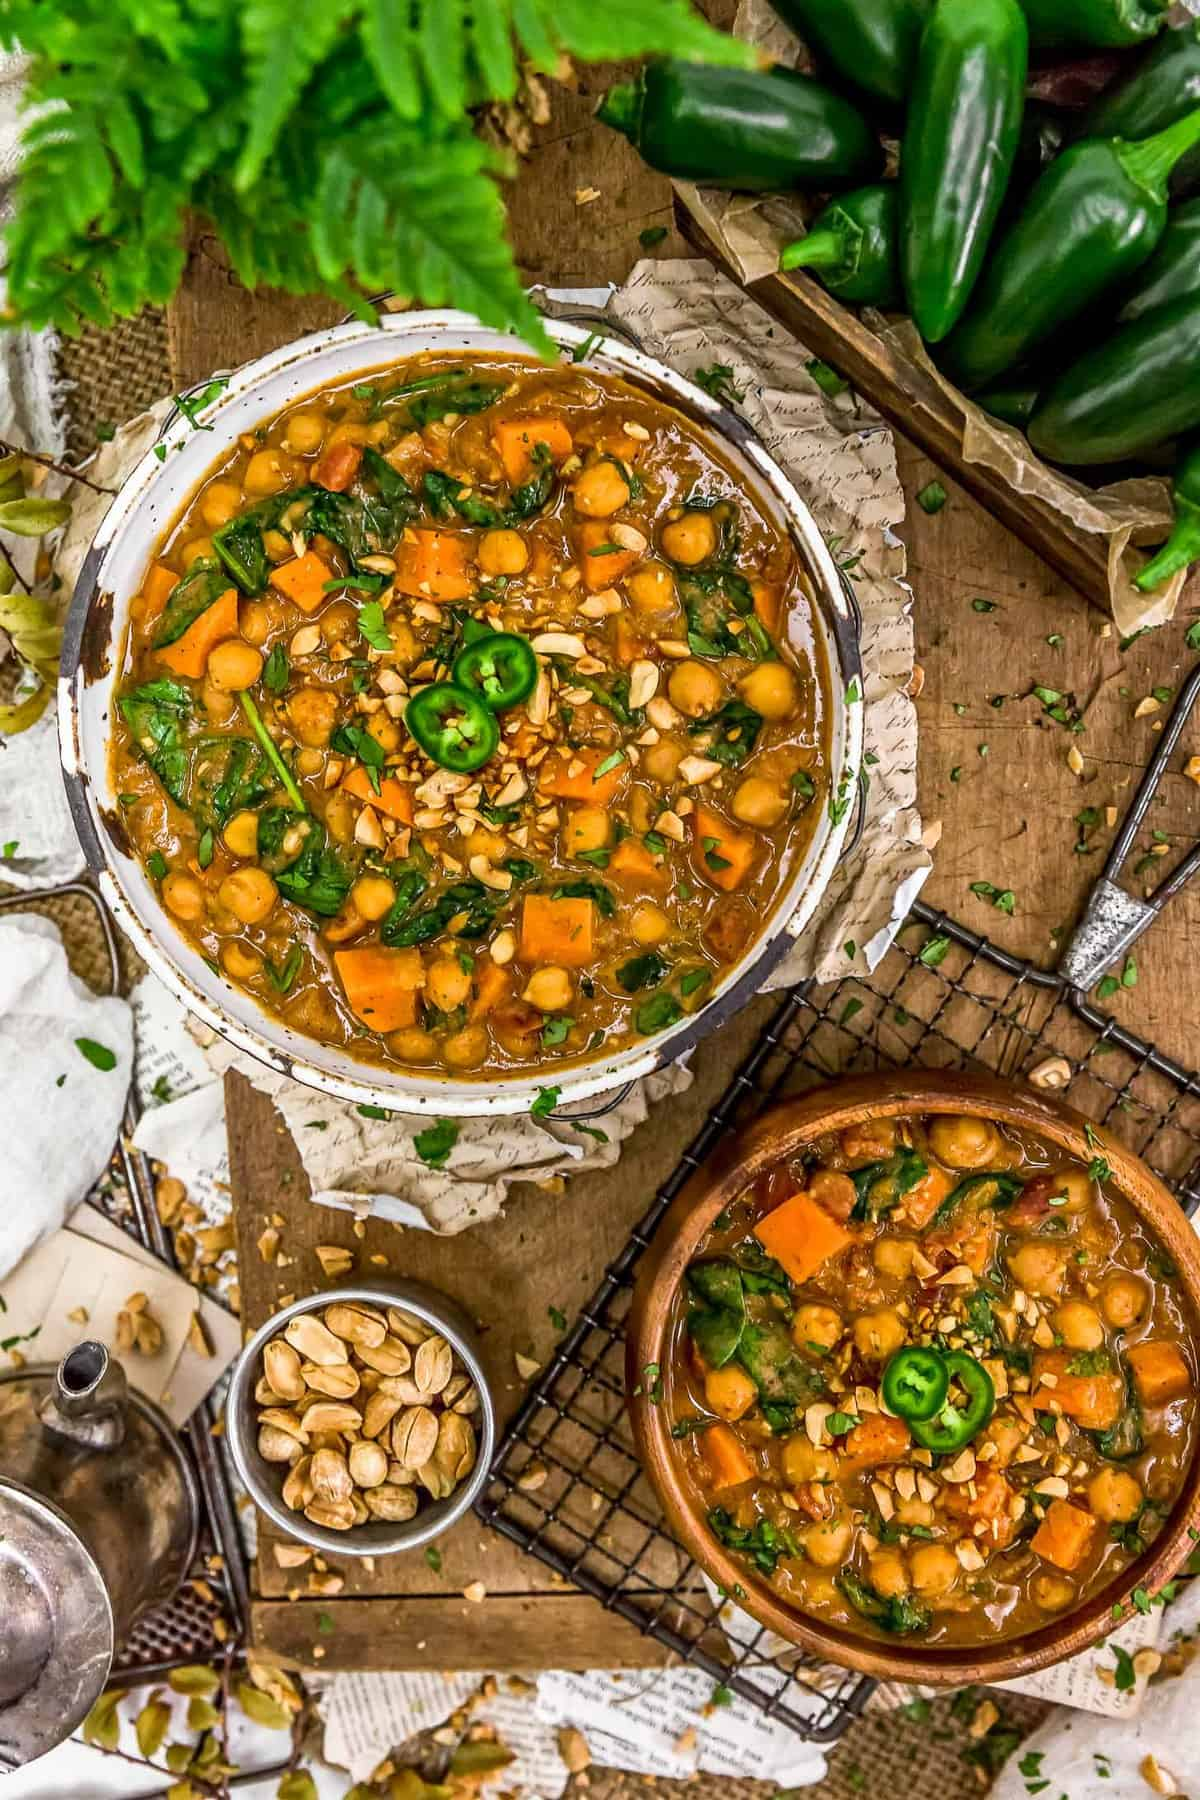 Tablescape of African Peanut Stew